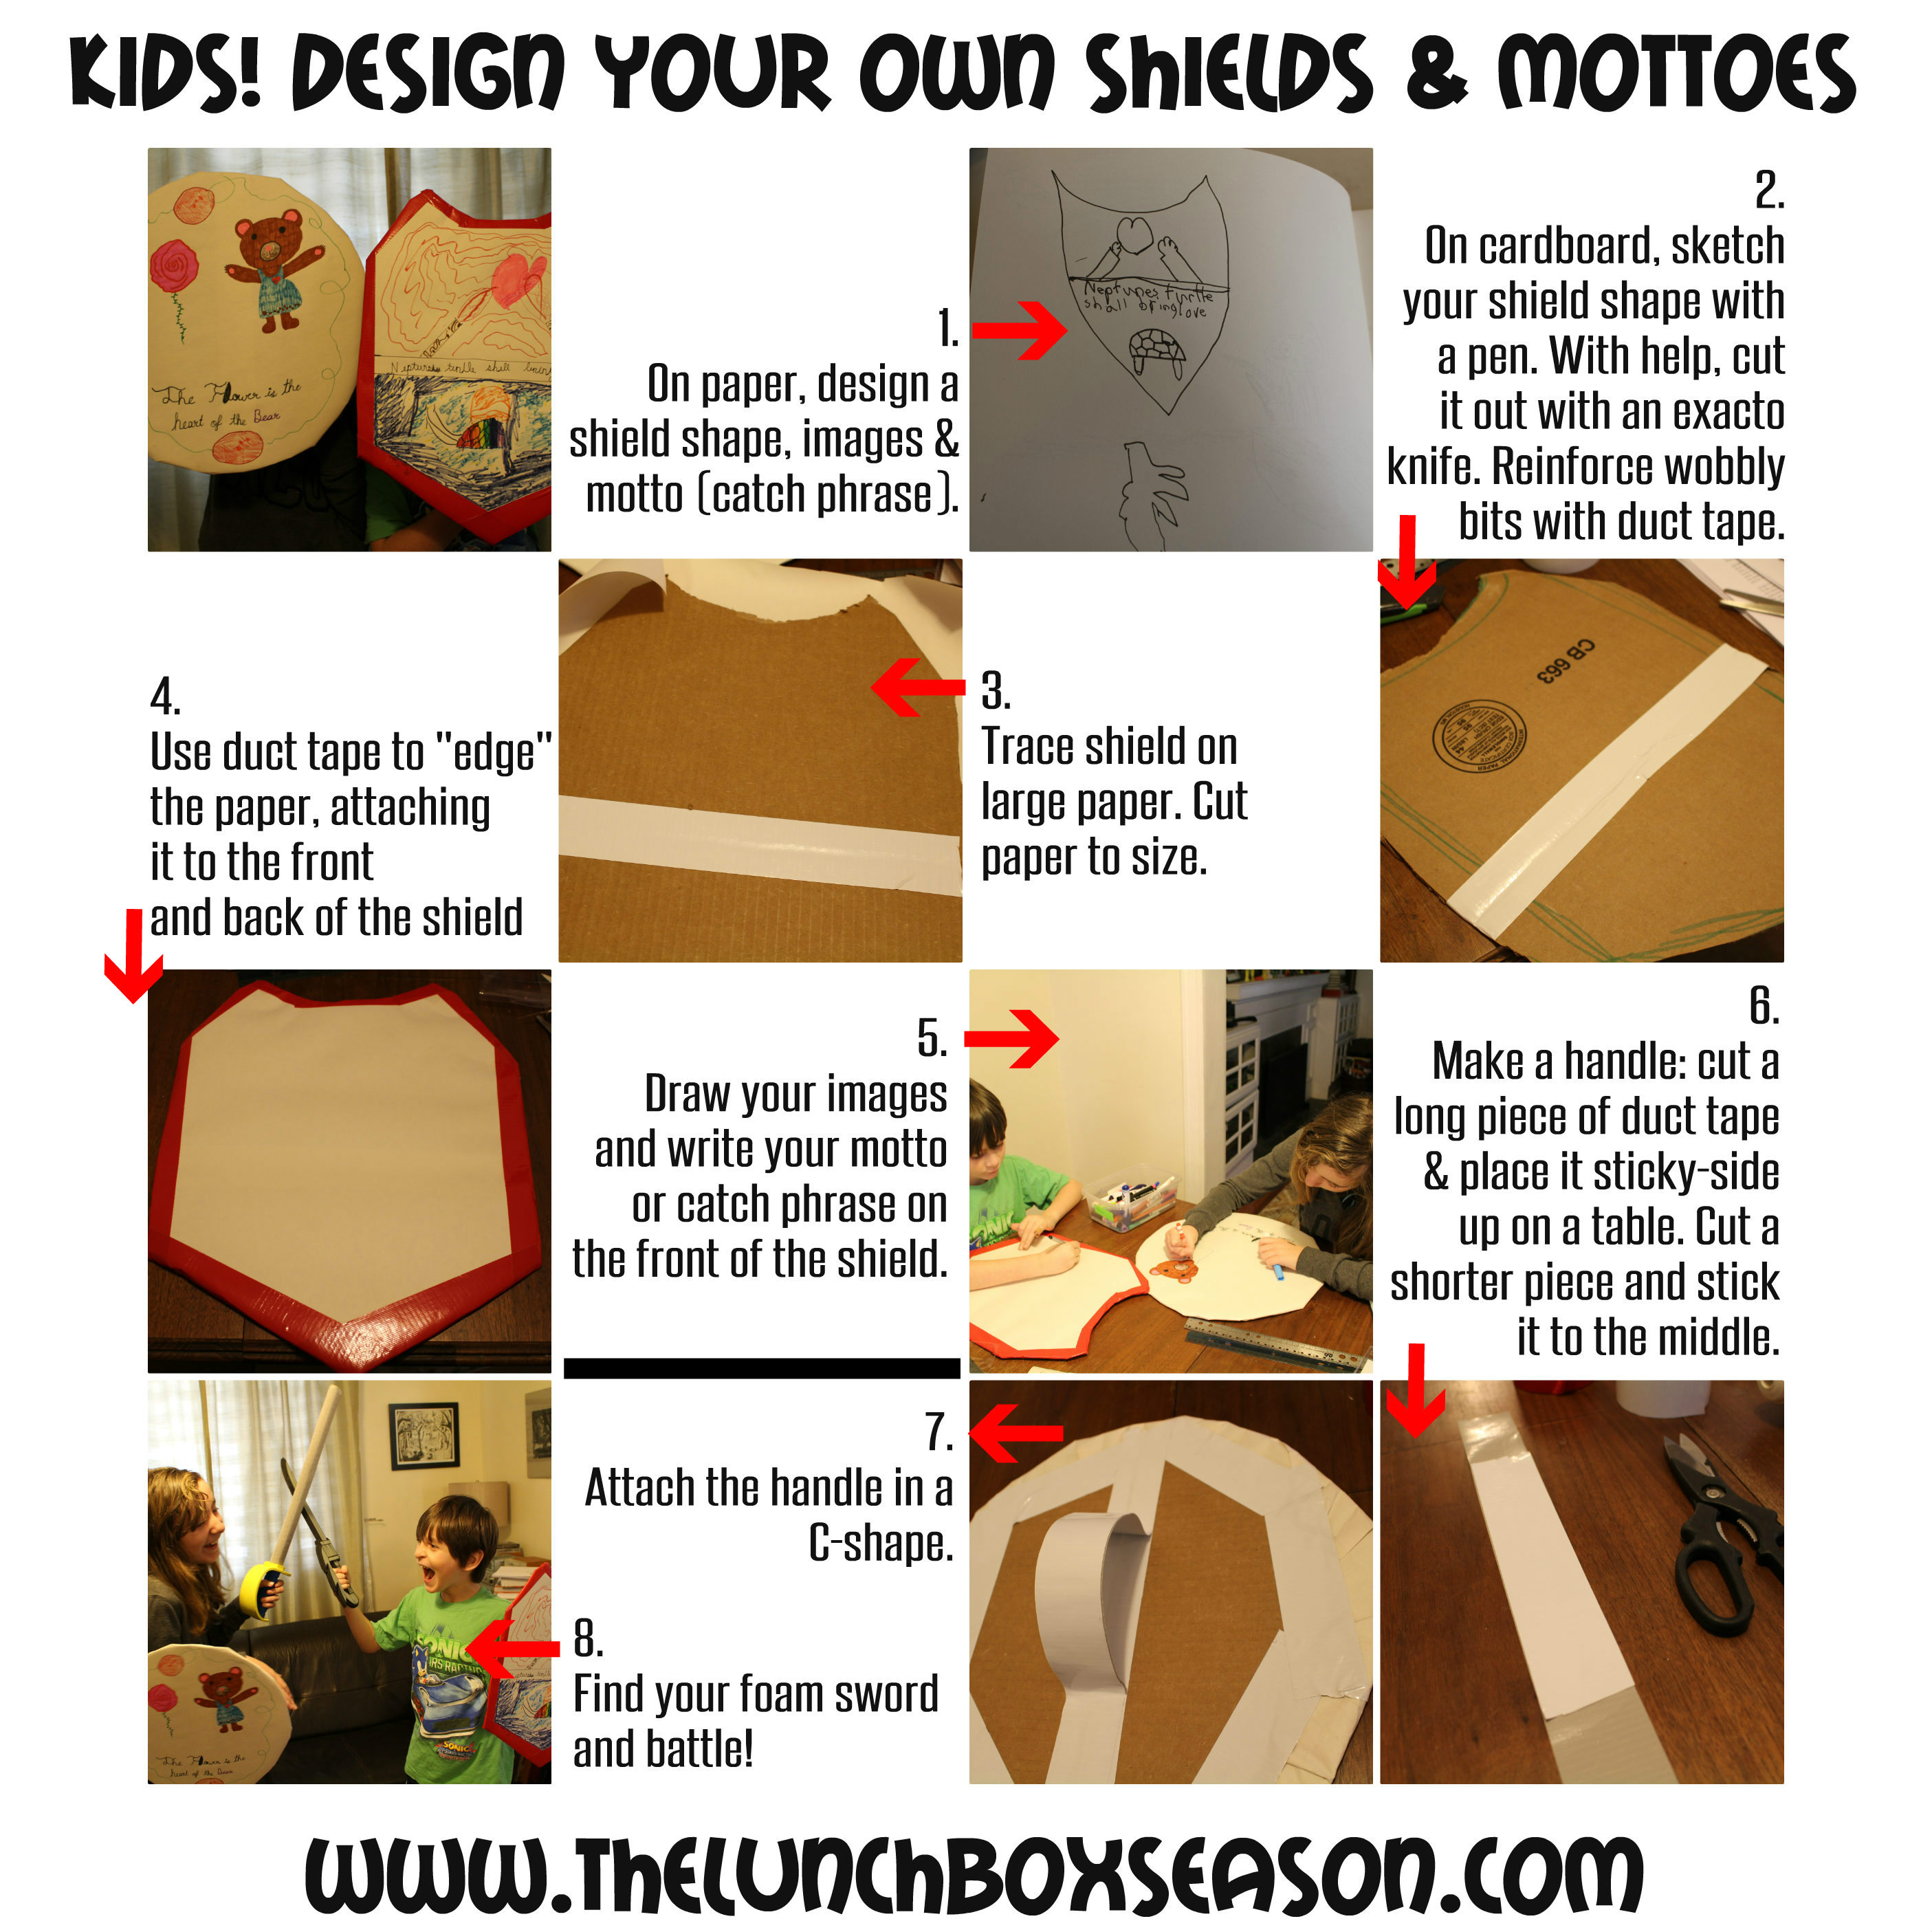 Kids!! Design your own shields and mottoes